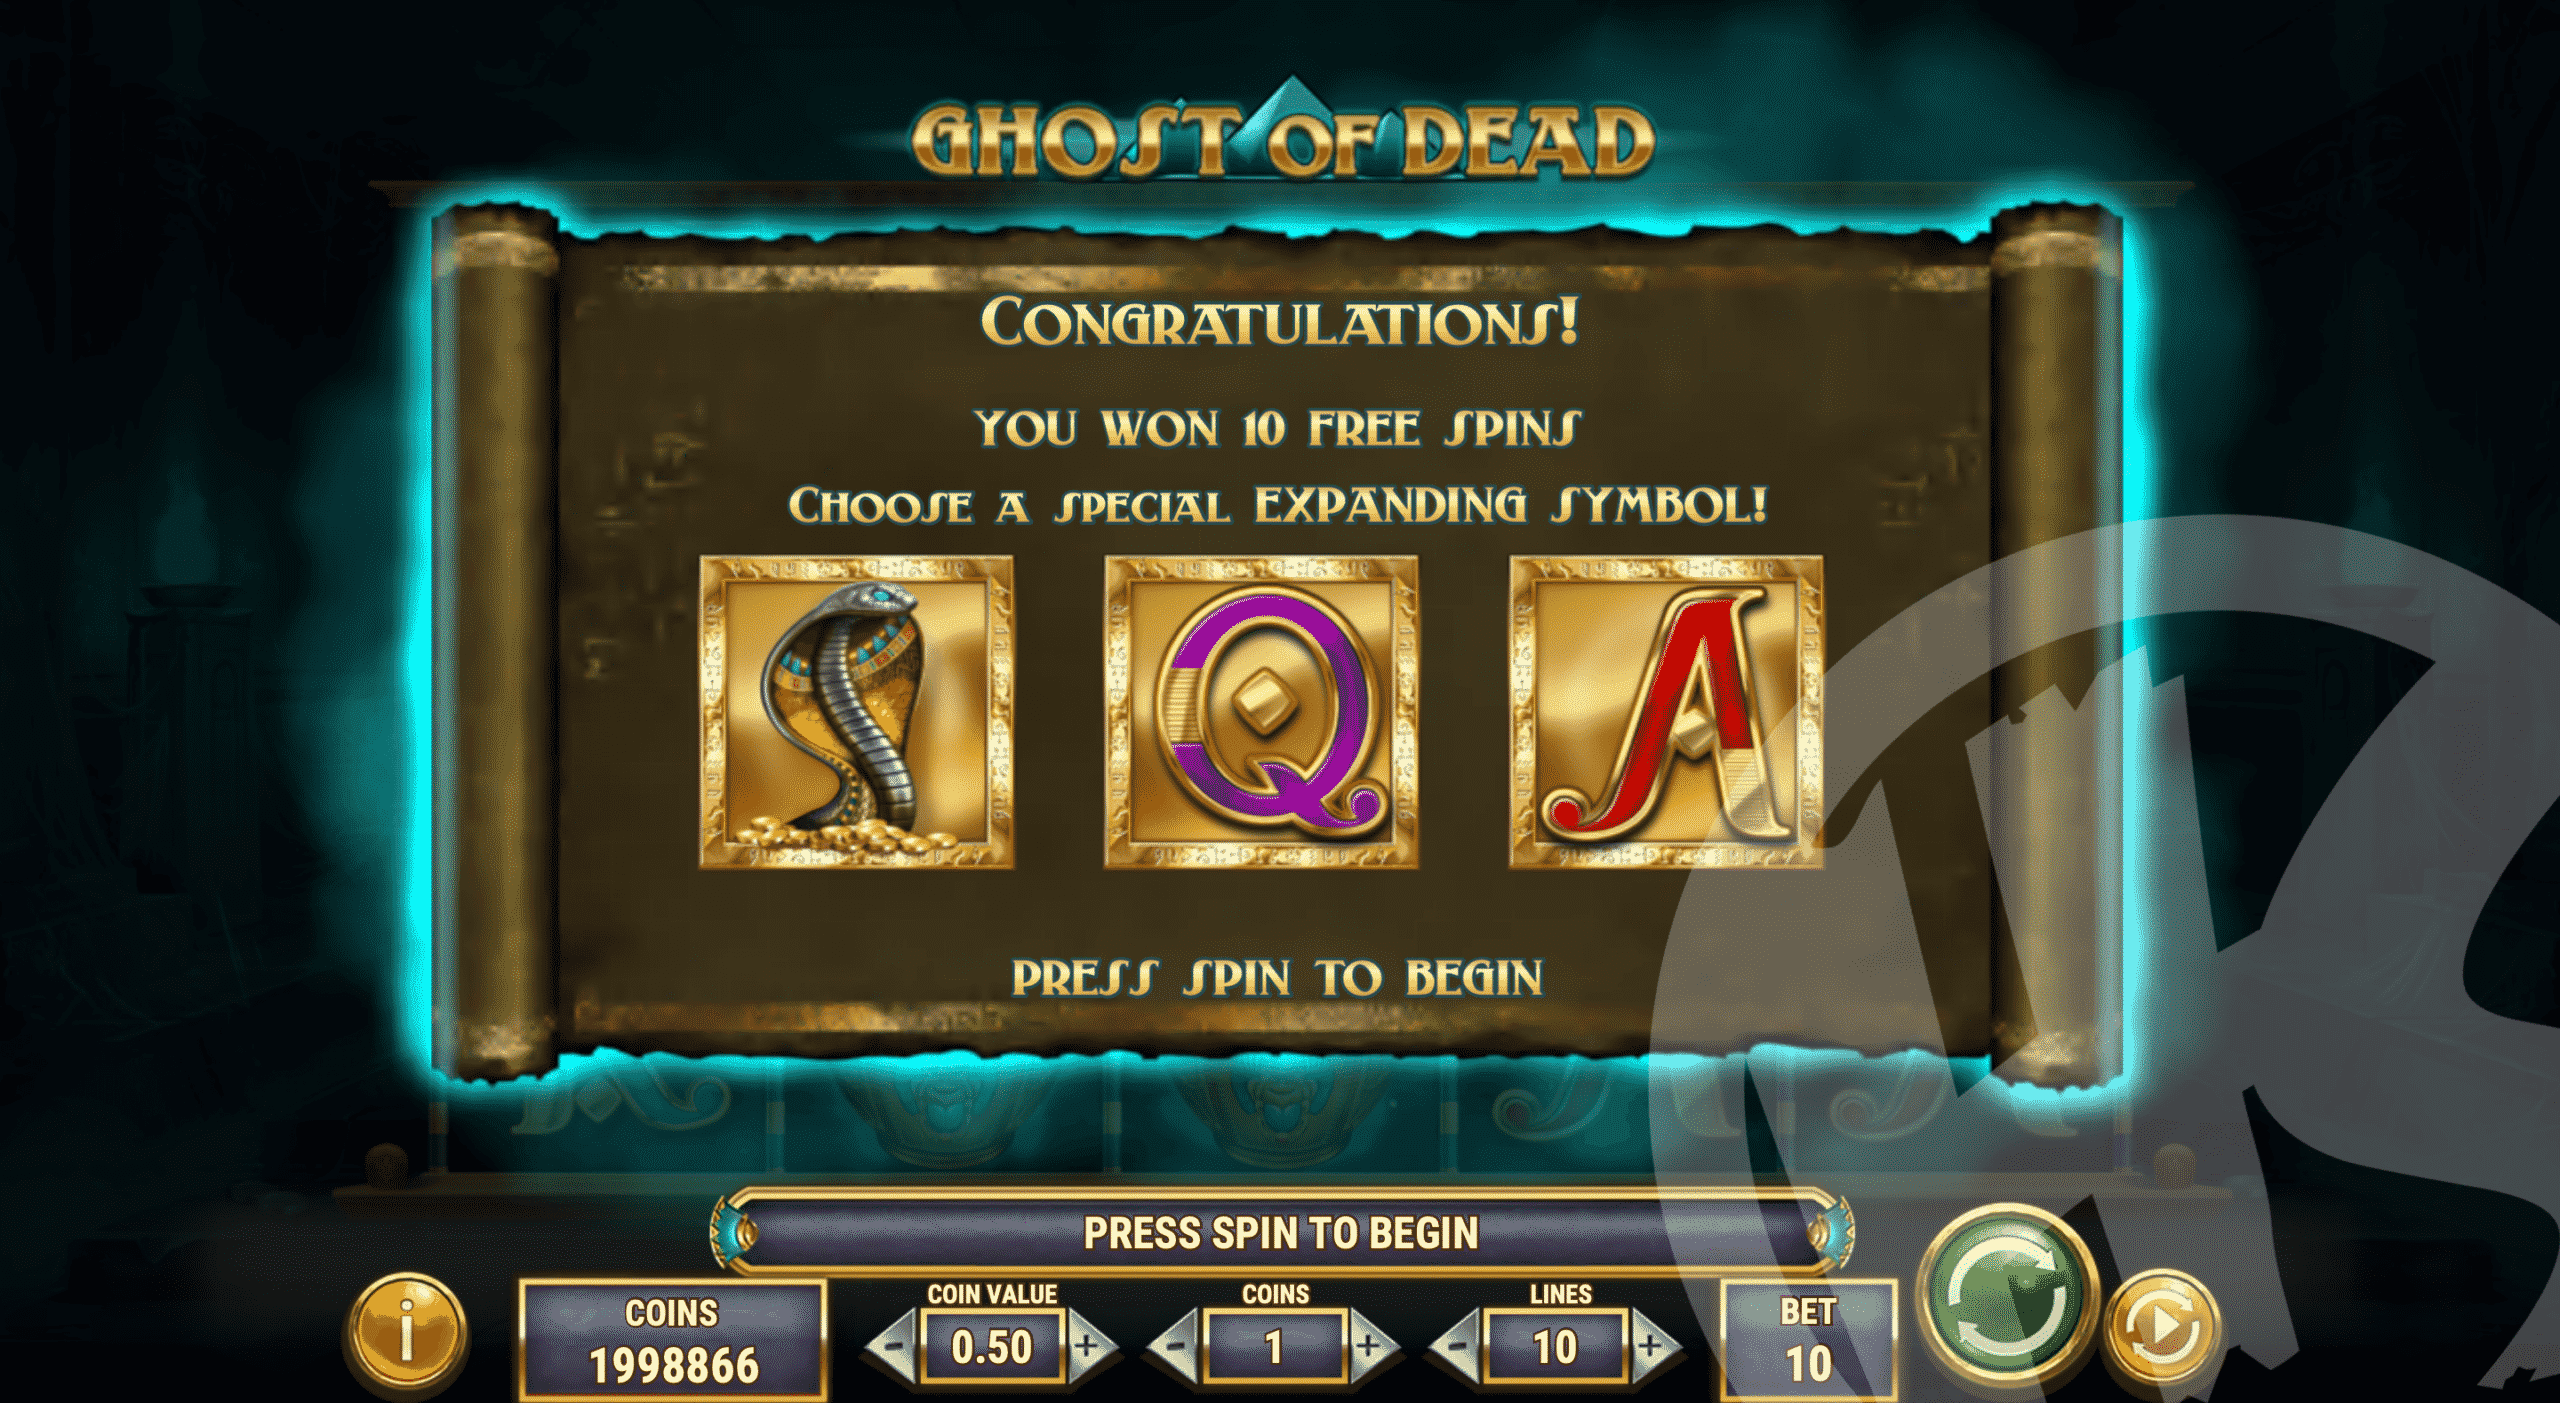 Players Get a Choice of Symbol During Free Spins